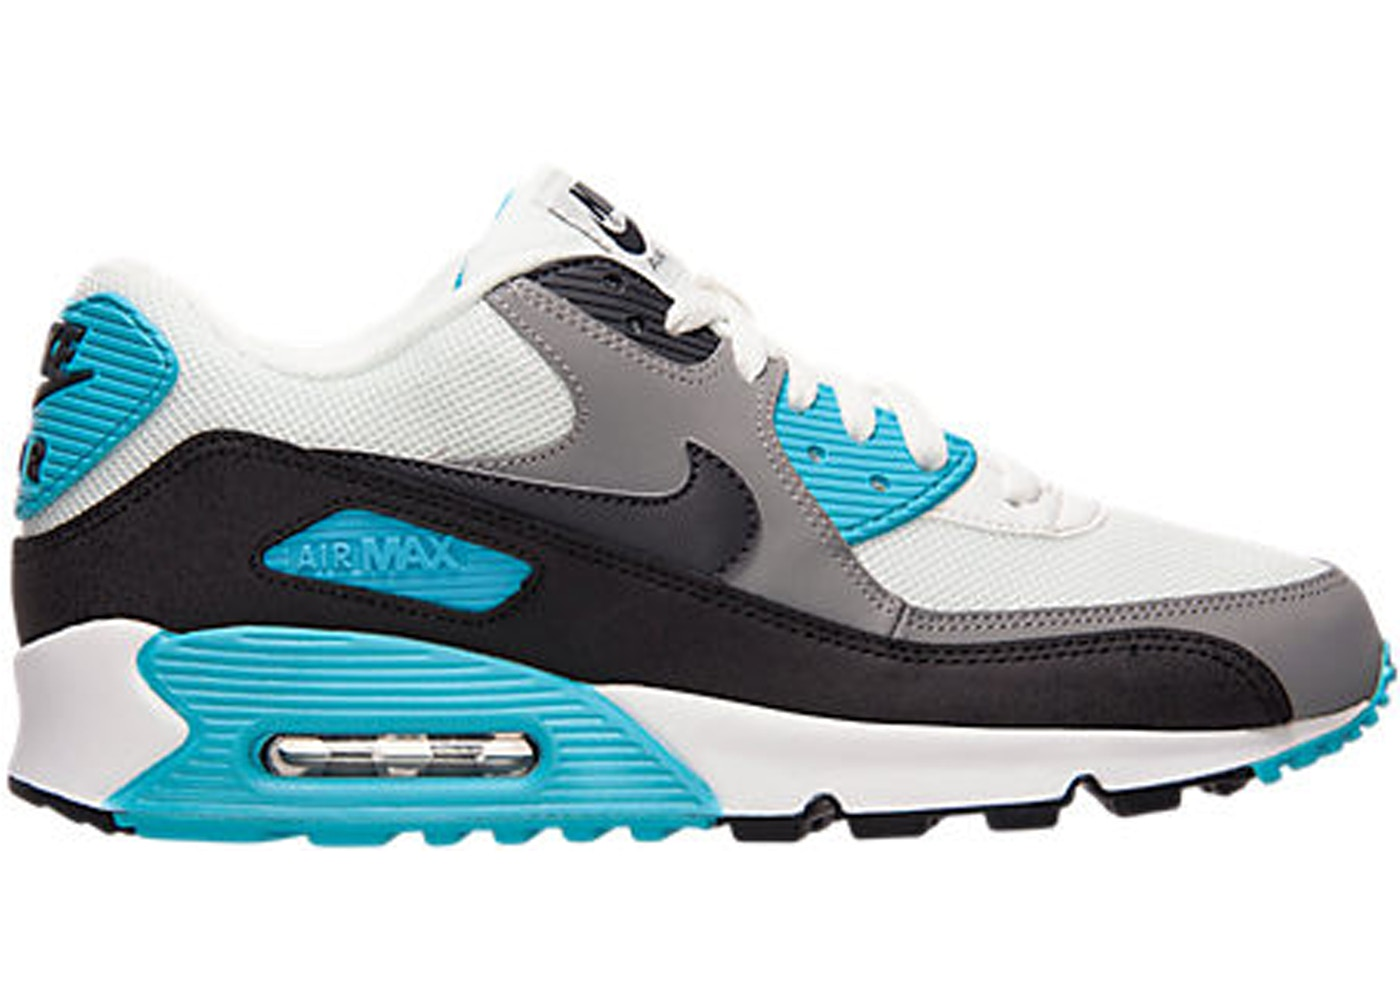 new concept 56384 32f43 Air Max 90 Chlorine Blue (2013)